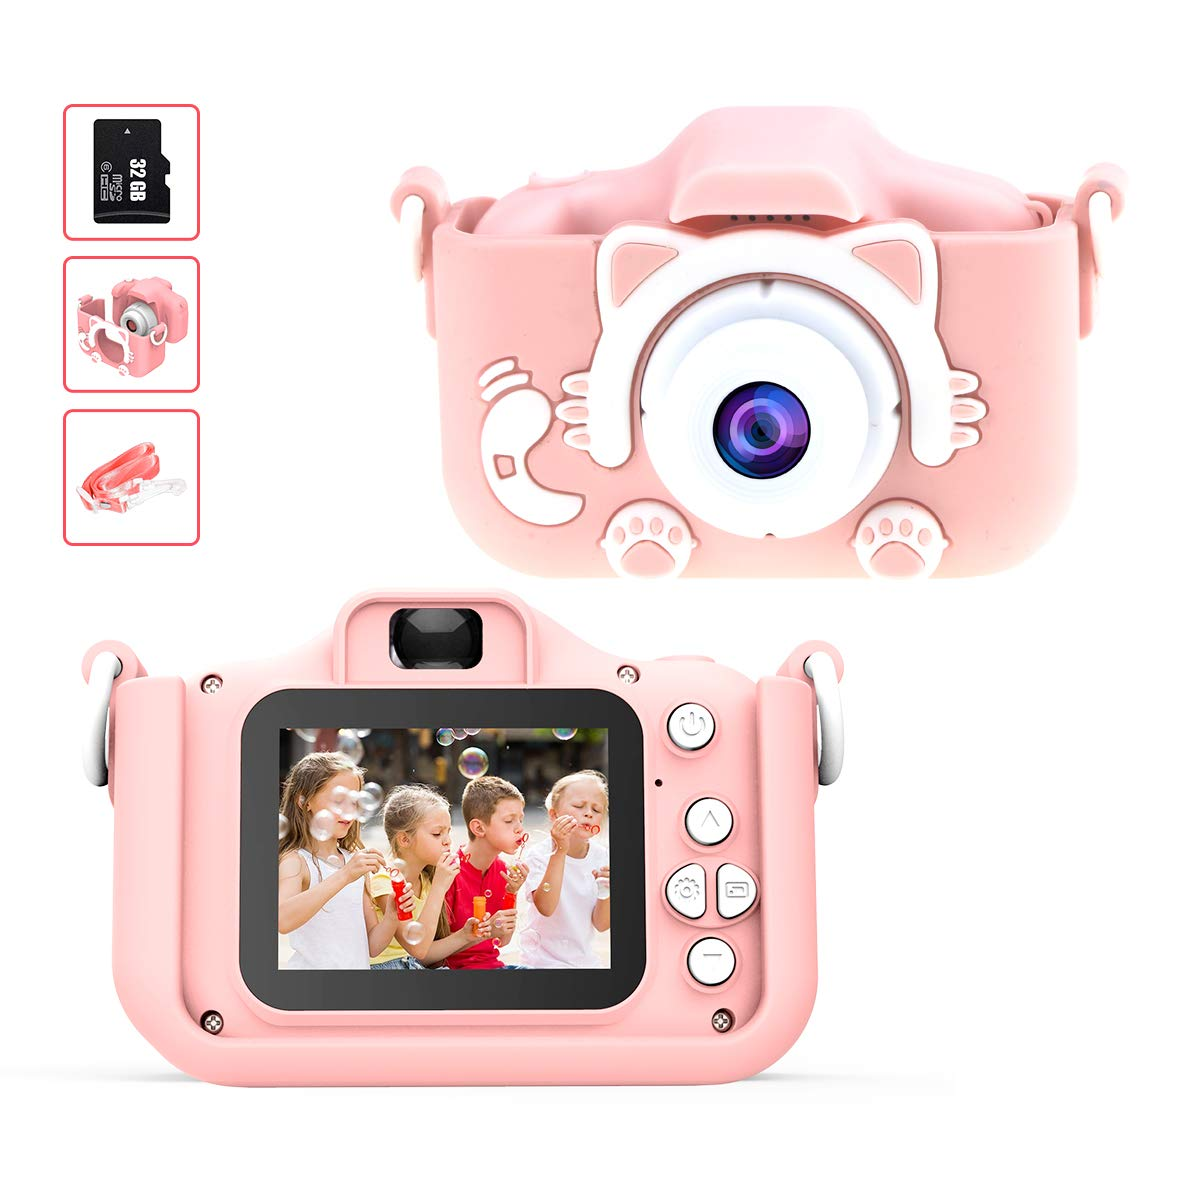 Kids Camera for Girls, Digital Dual Camera 2.0 Inches Screen 1080P Video Camcorder Anti-Drop Children Selfie Cartoon Camera for Age 3-12 Years - 32GB Memory Card Included by Sinohrd